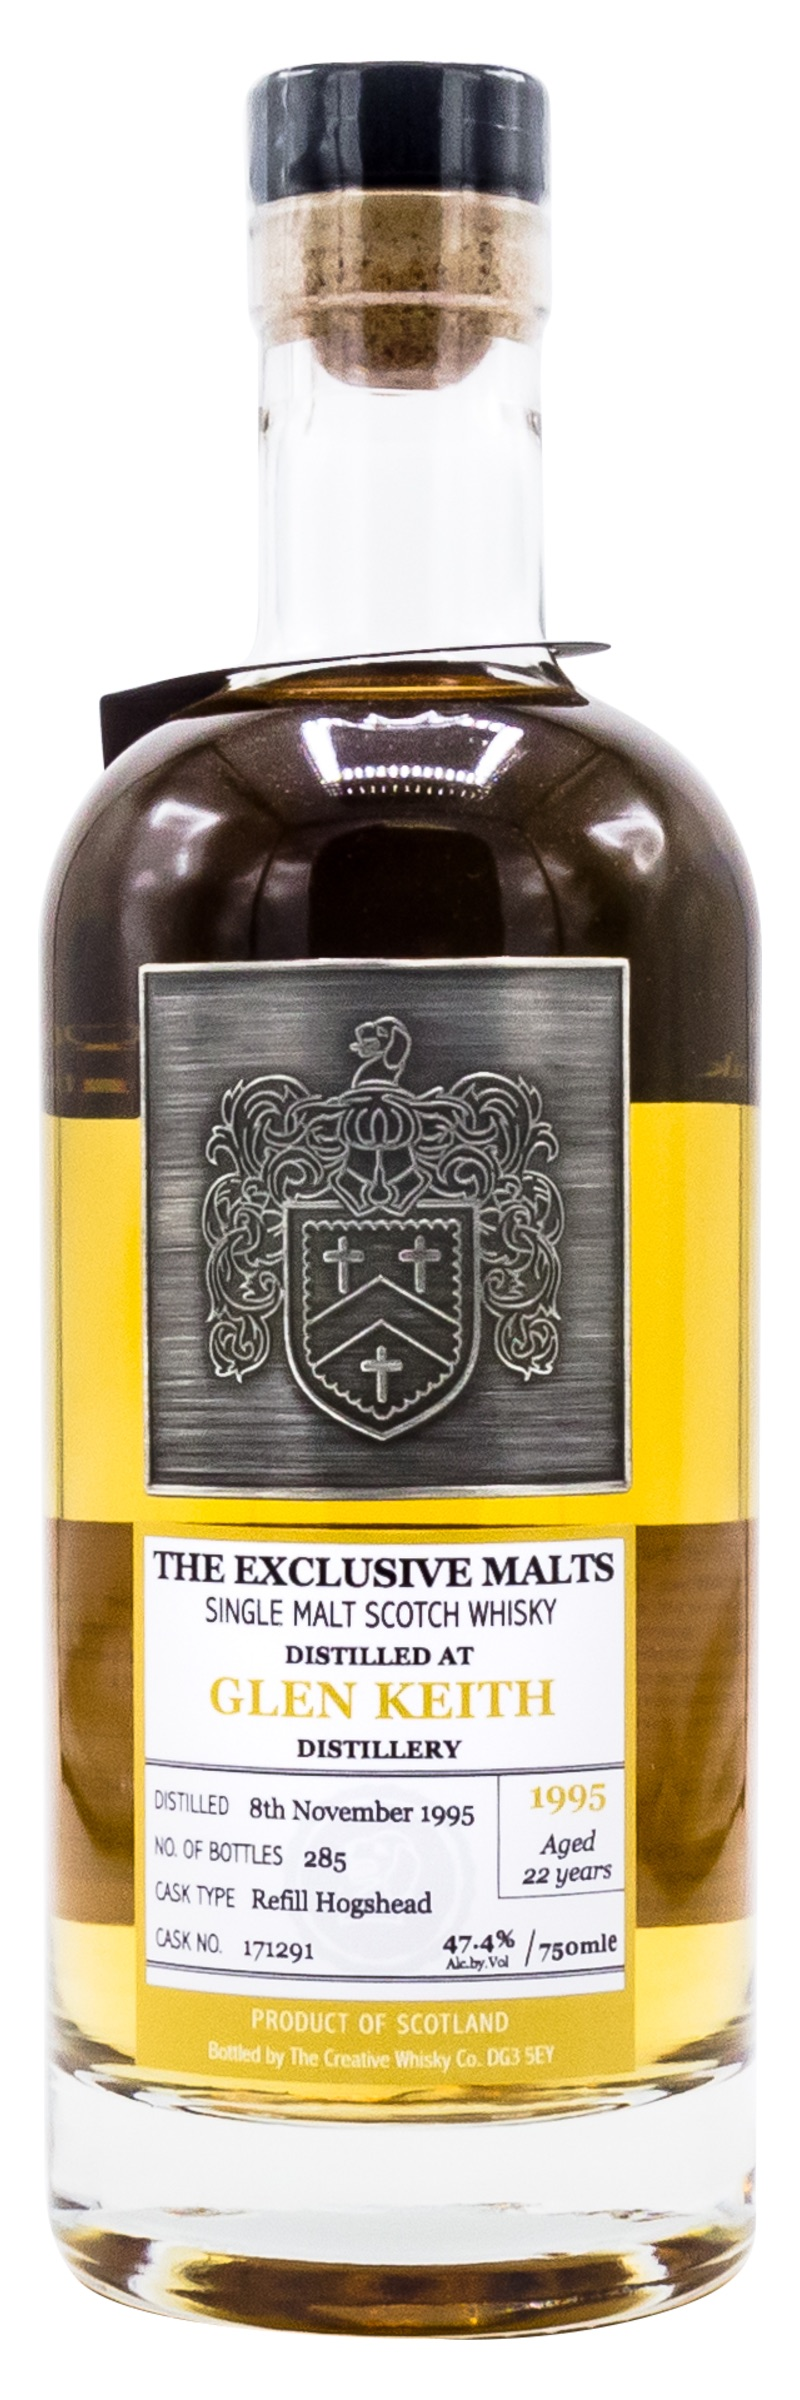 1995 EXCLUSIVE MALTS SINGLE MALT <br>SCOTCH WHISKY GLEN KEITH, 22 YEAR OLD